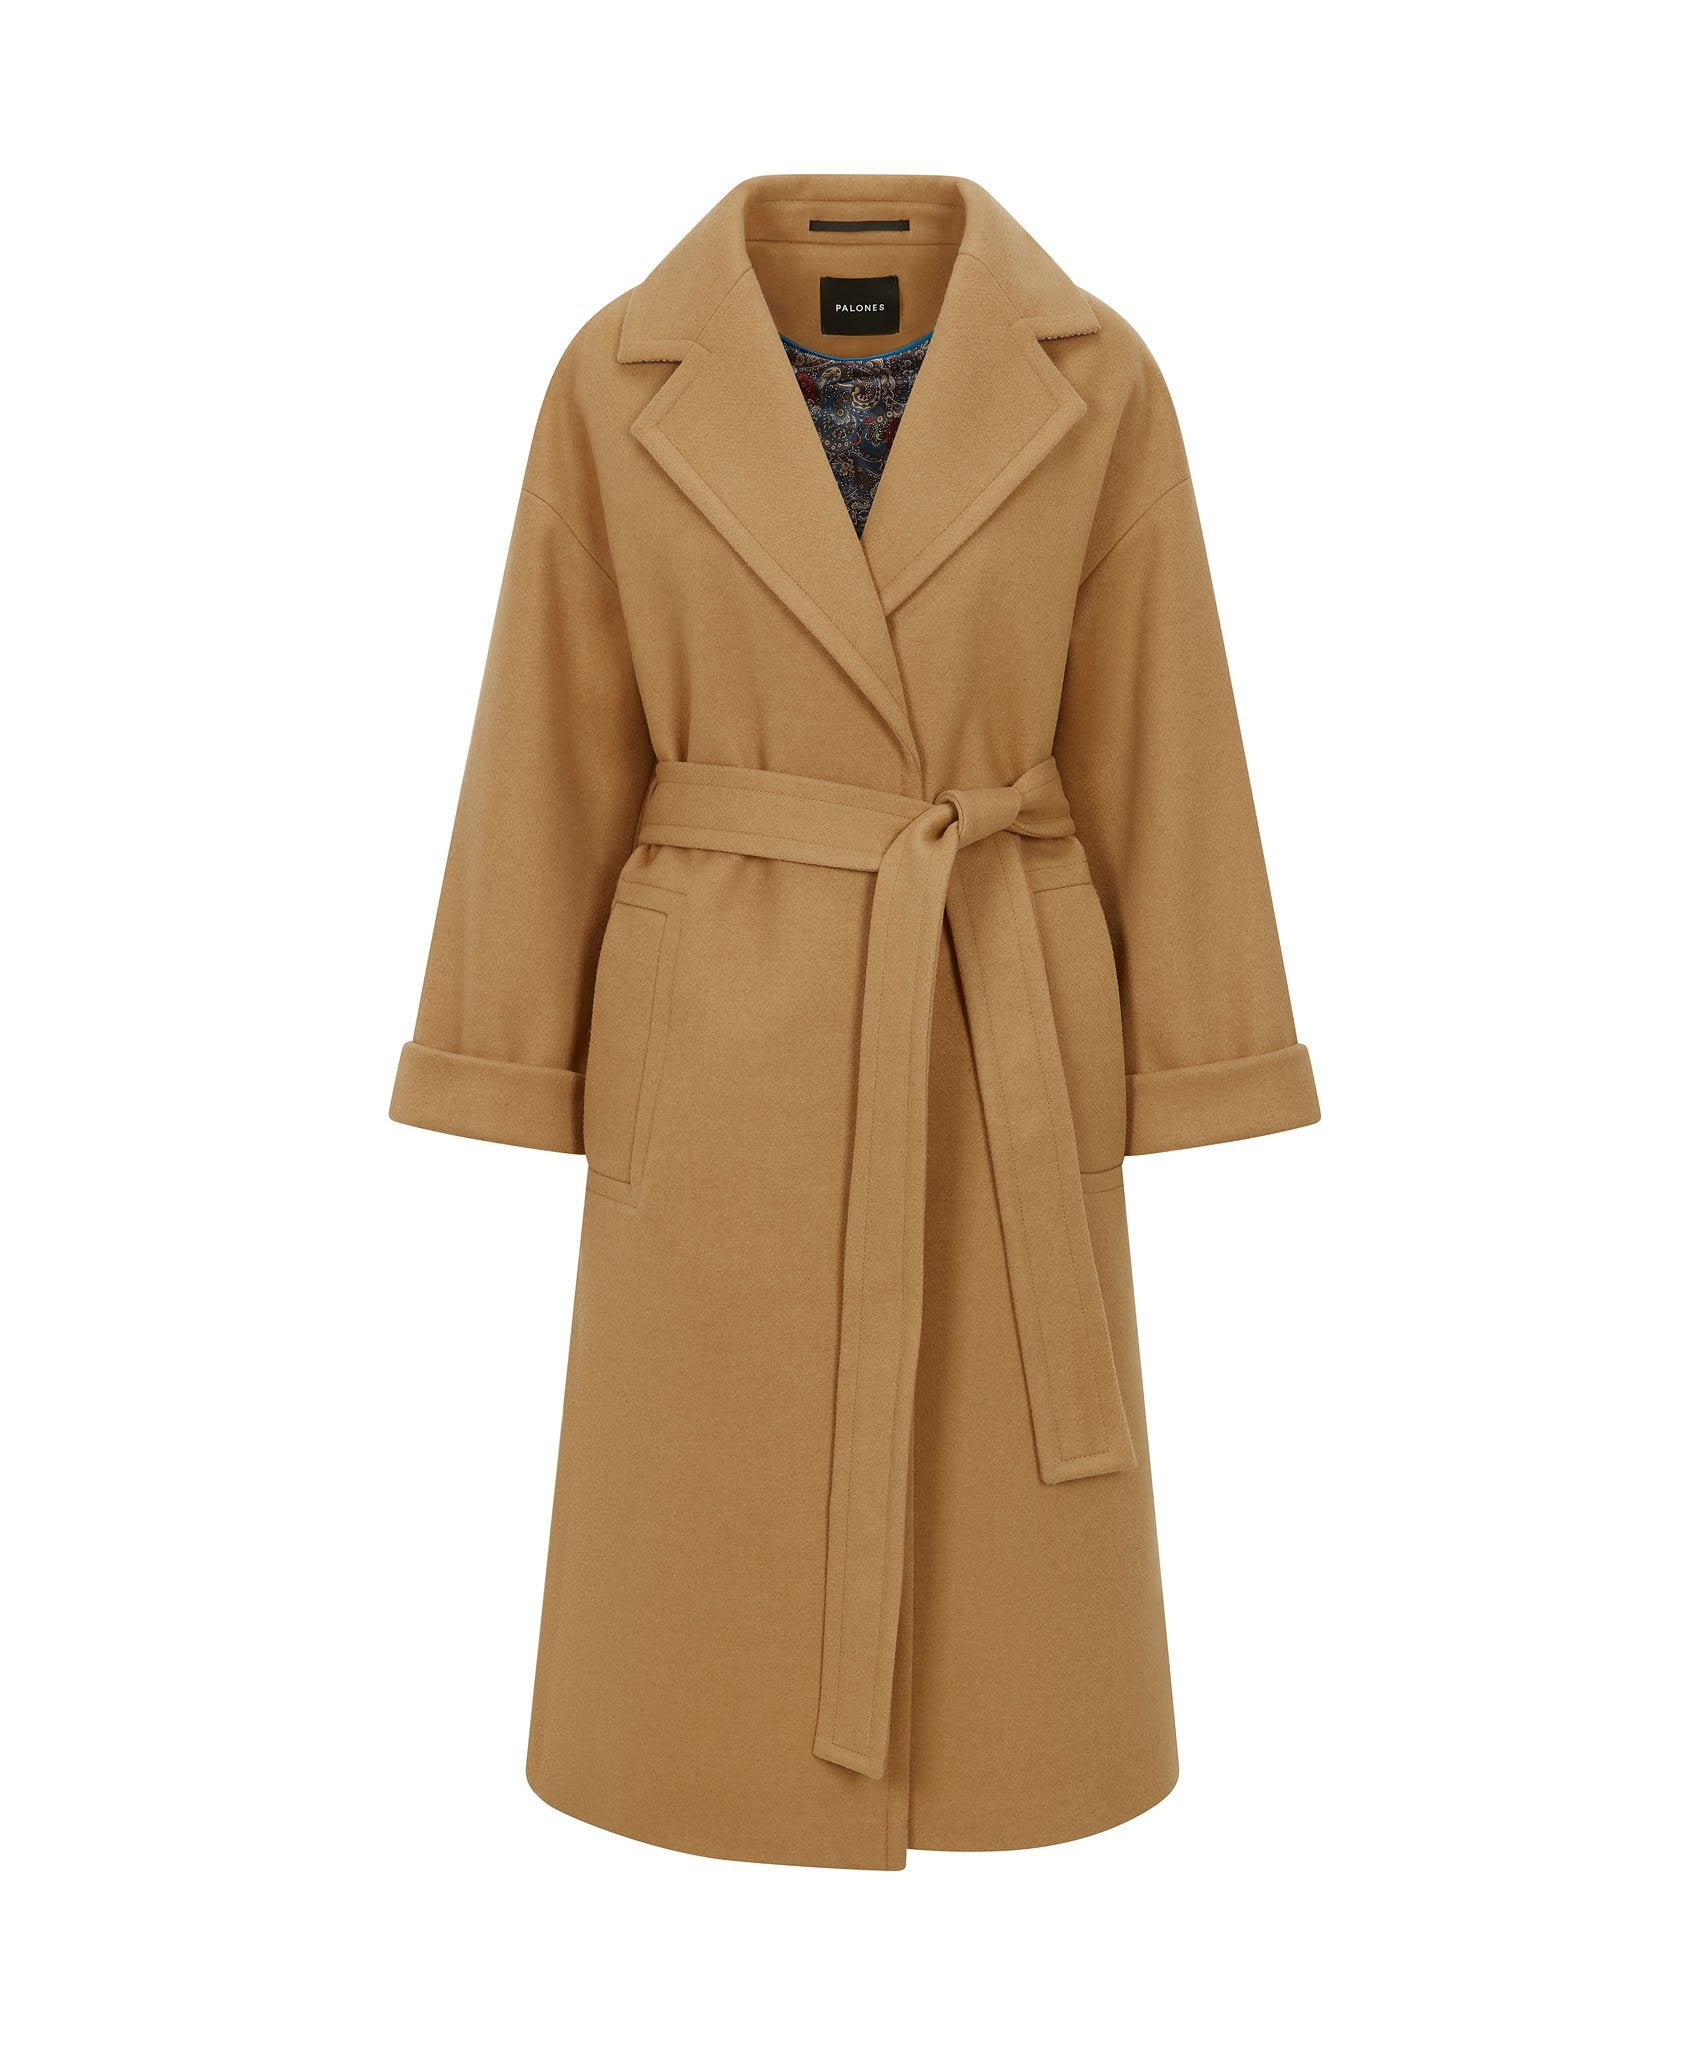 Load image into Gallery viewer, Palones Topstitch Belted Robe Coat Tan